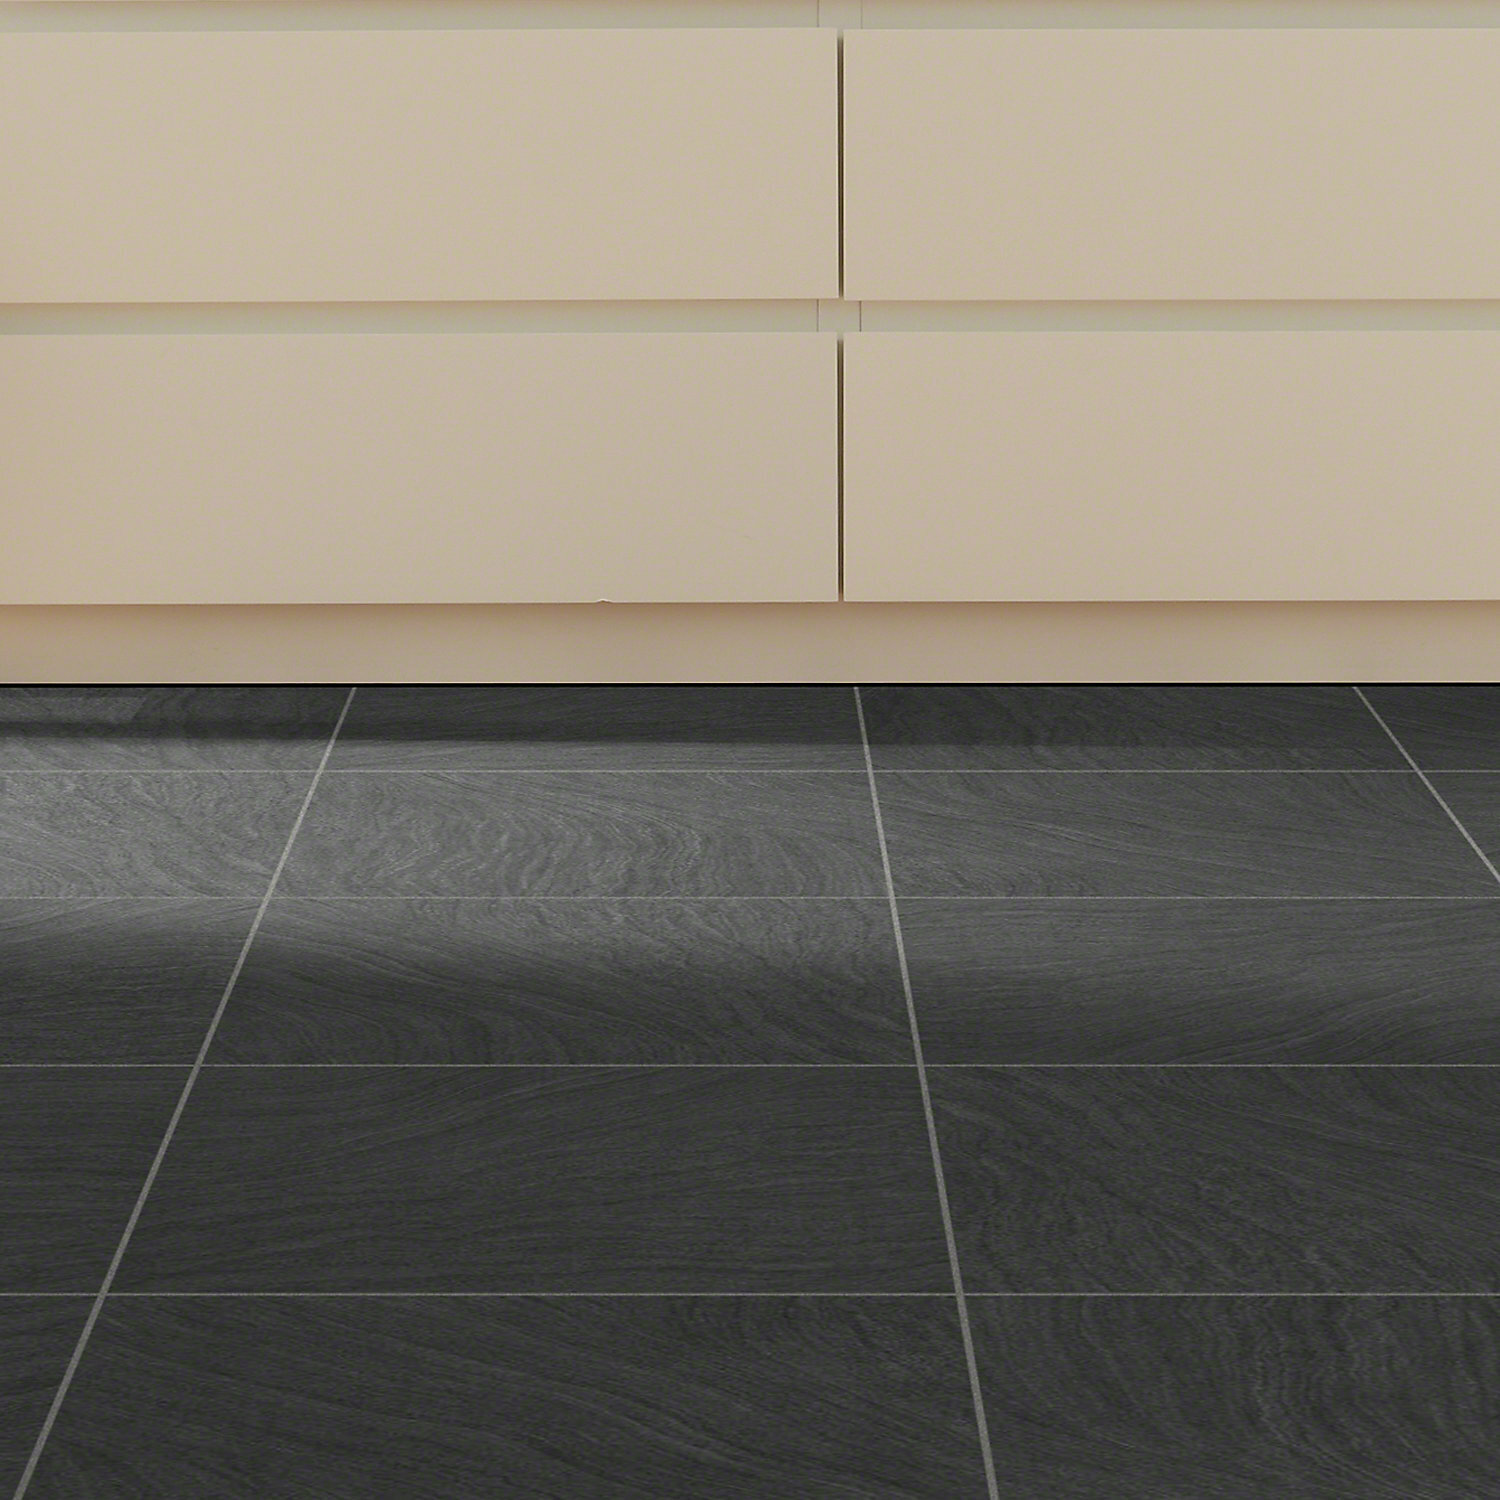 Shaw floors renaissance 18 x 18 x 25mm luxury vinyl tile in shaw floors renaissance 18 x 18 x 25mm luxury vinyl tile in midnight reviews wayfair dailygadgetfo Image collections